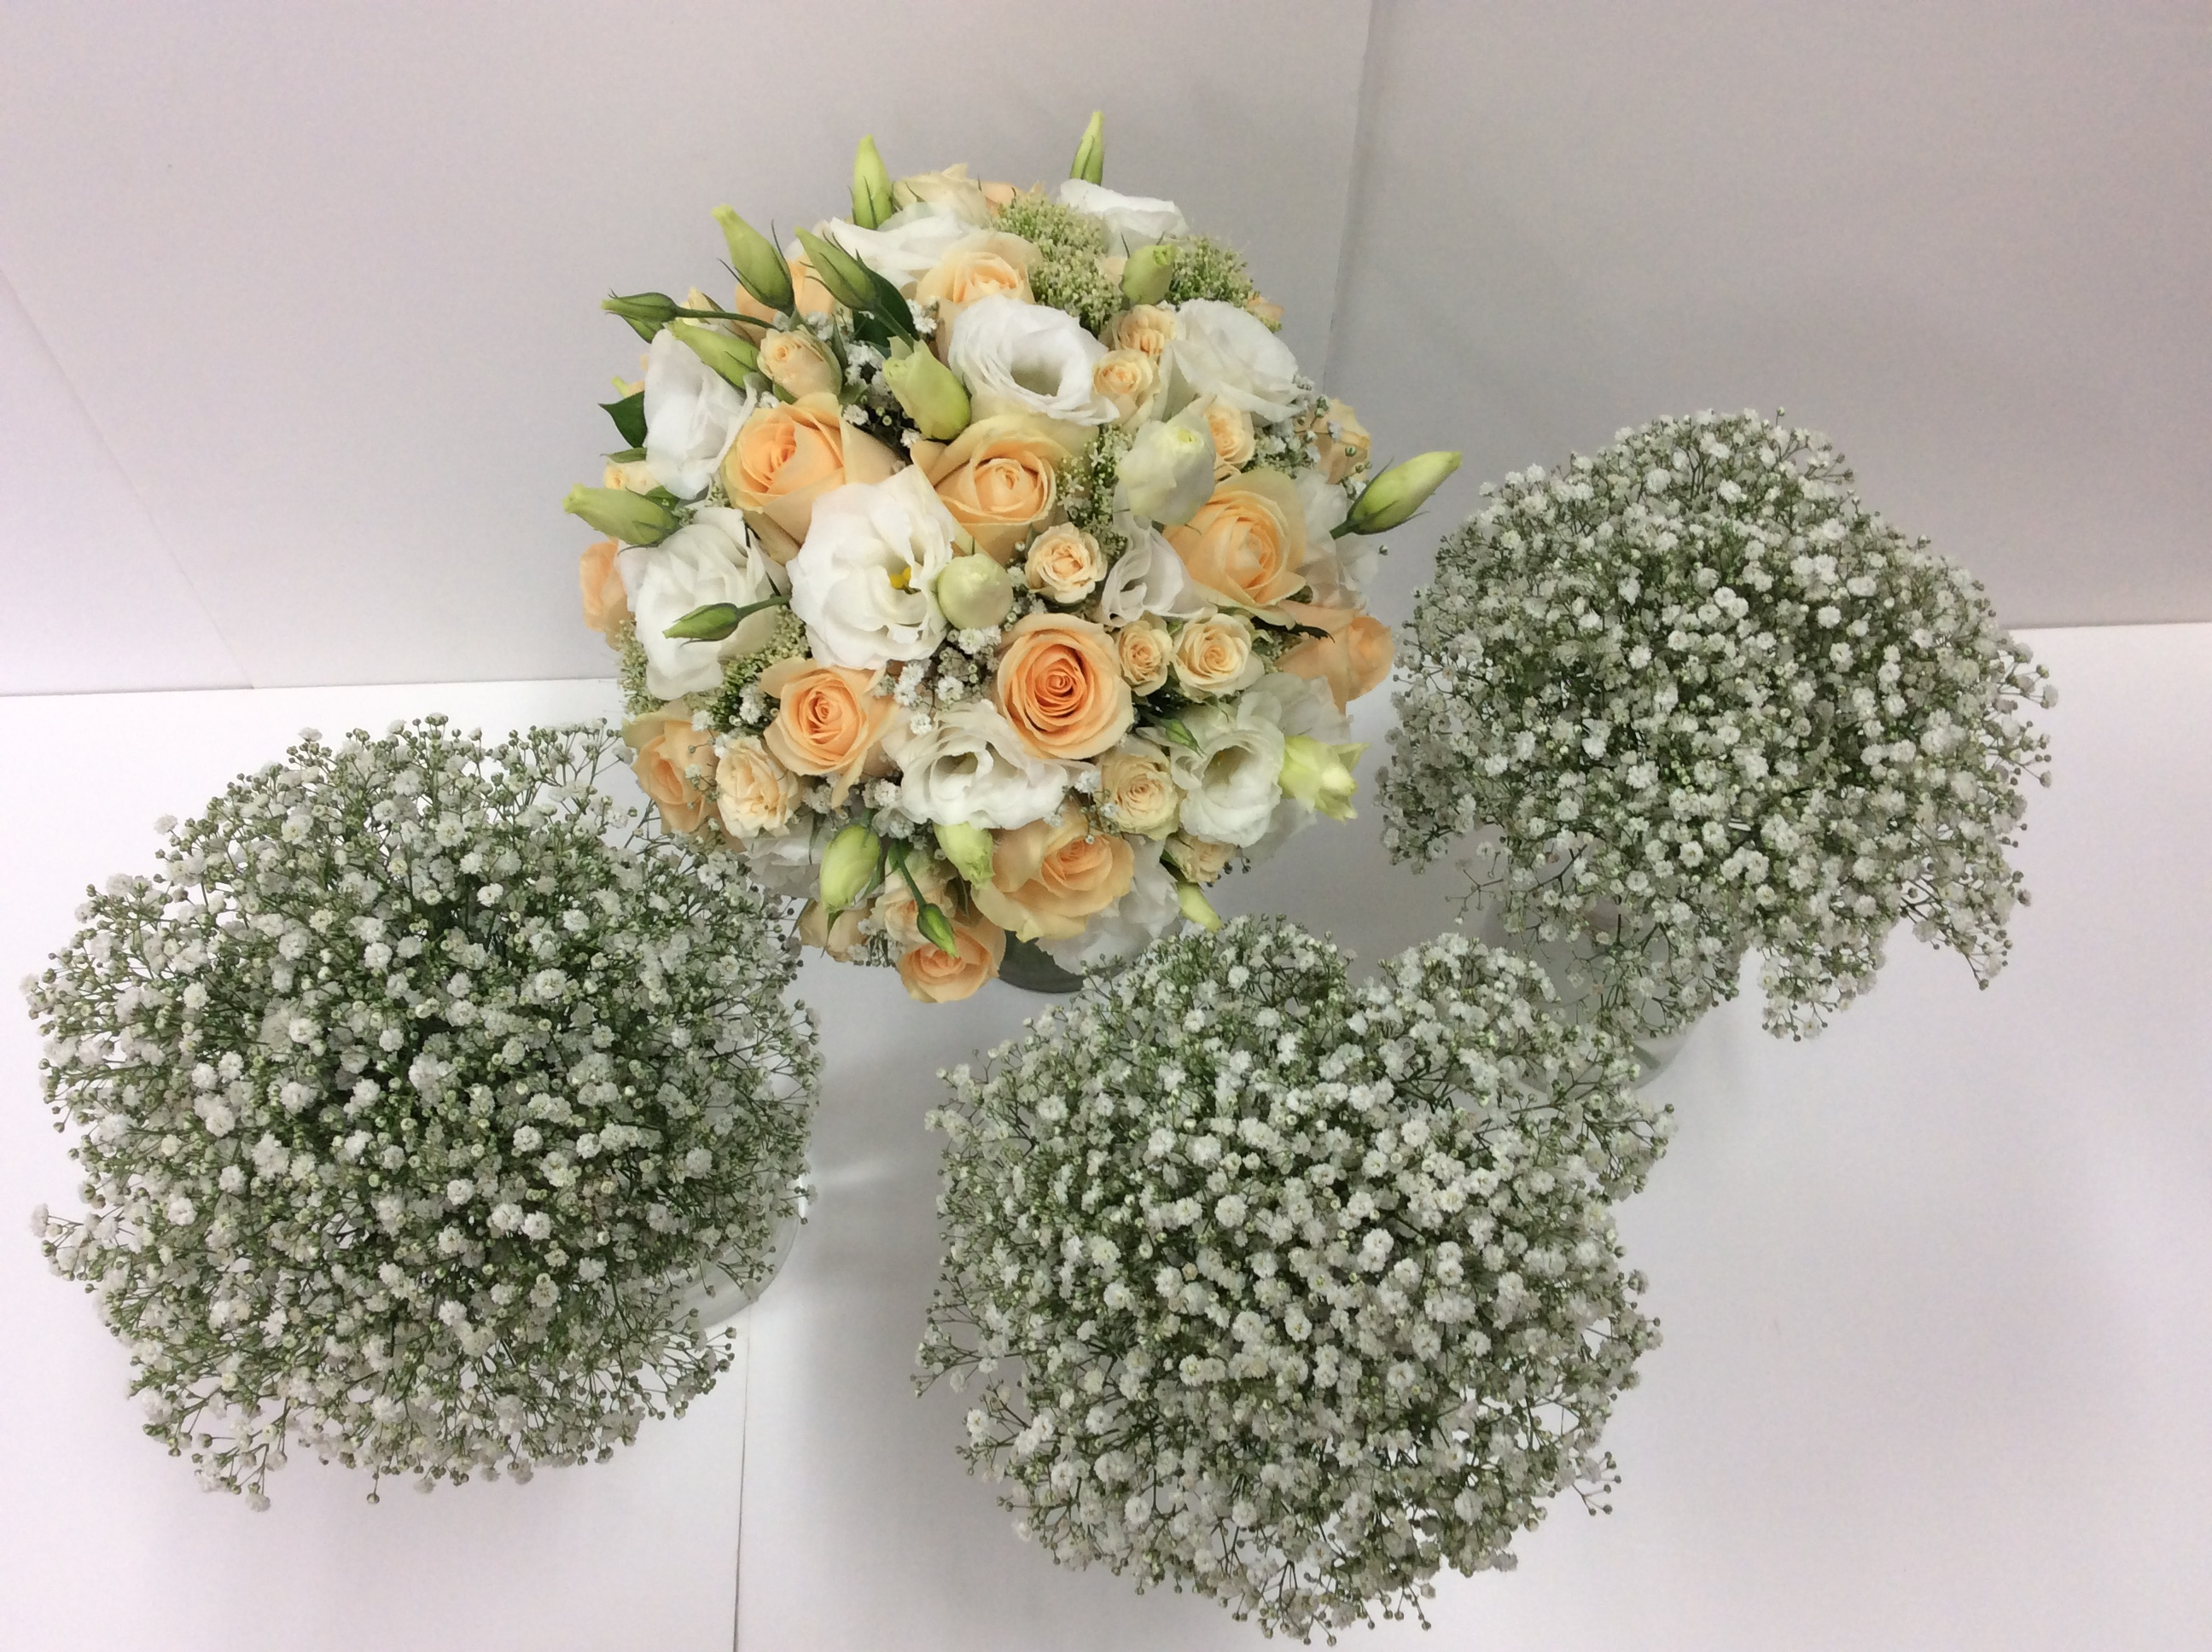 Wedding Cream and apricot bridal bouquet and Gyp posies